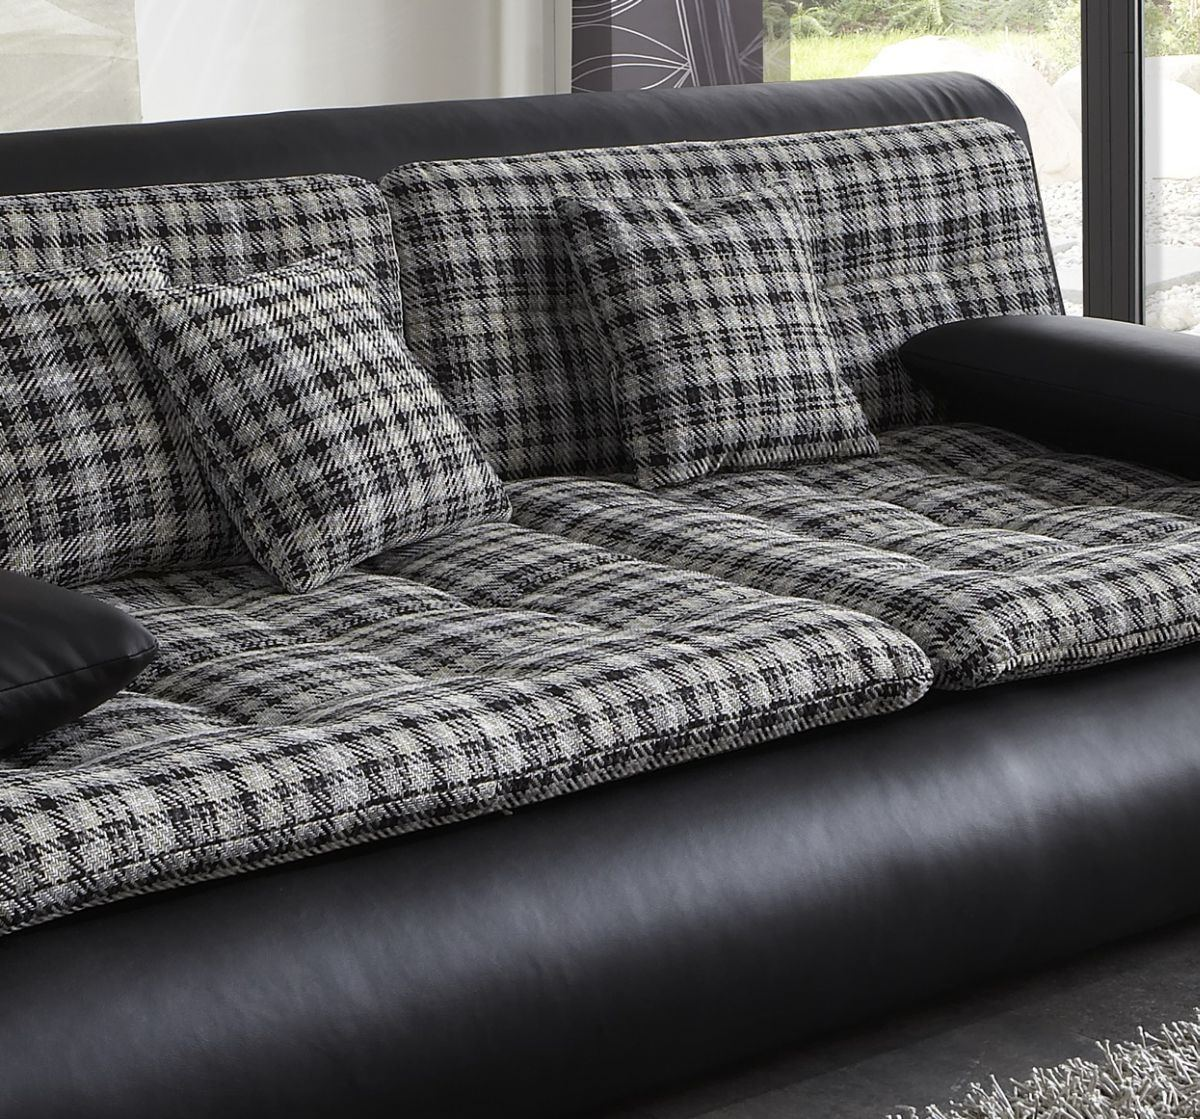 sofas ledersofa ecksofa funktionssofa exit one stoffsofas g nstig online kaufen. Black Bedroom Furniture Sets. Home Design Ideas